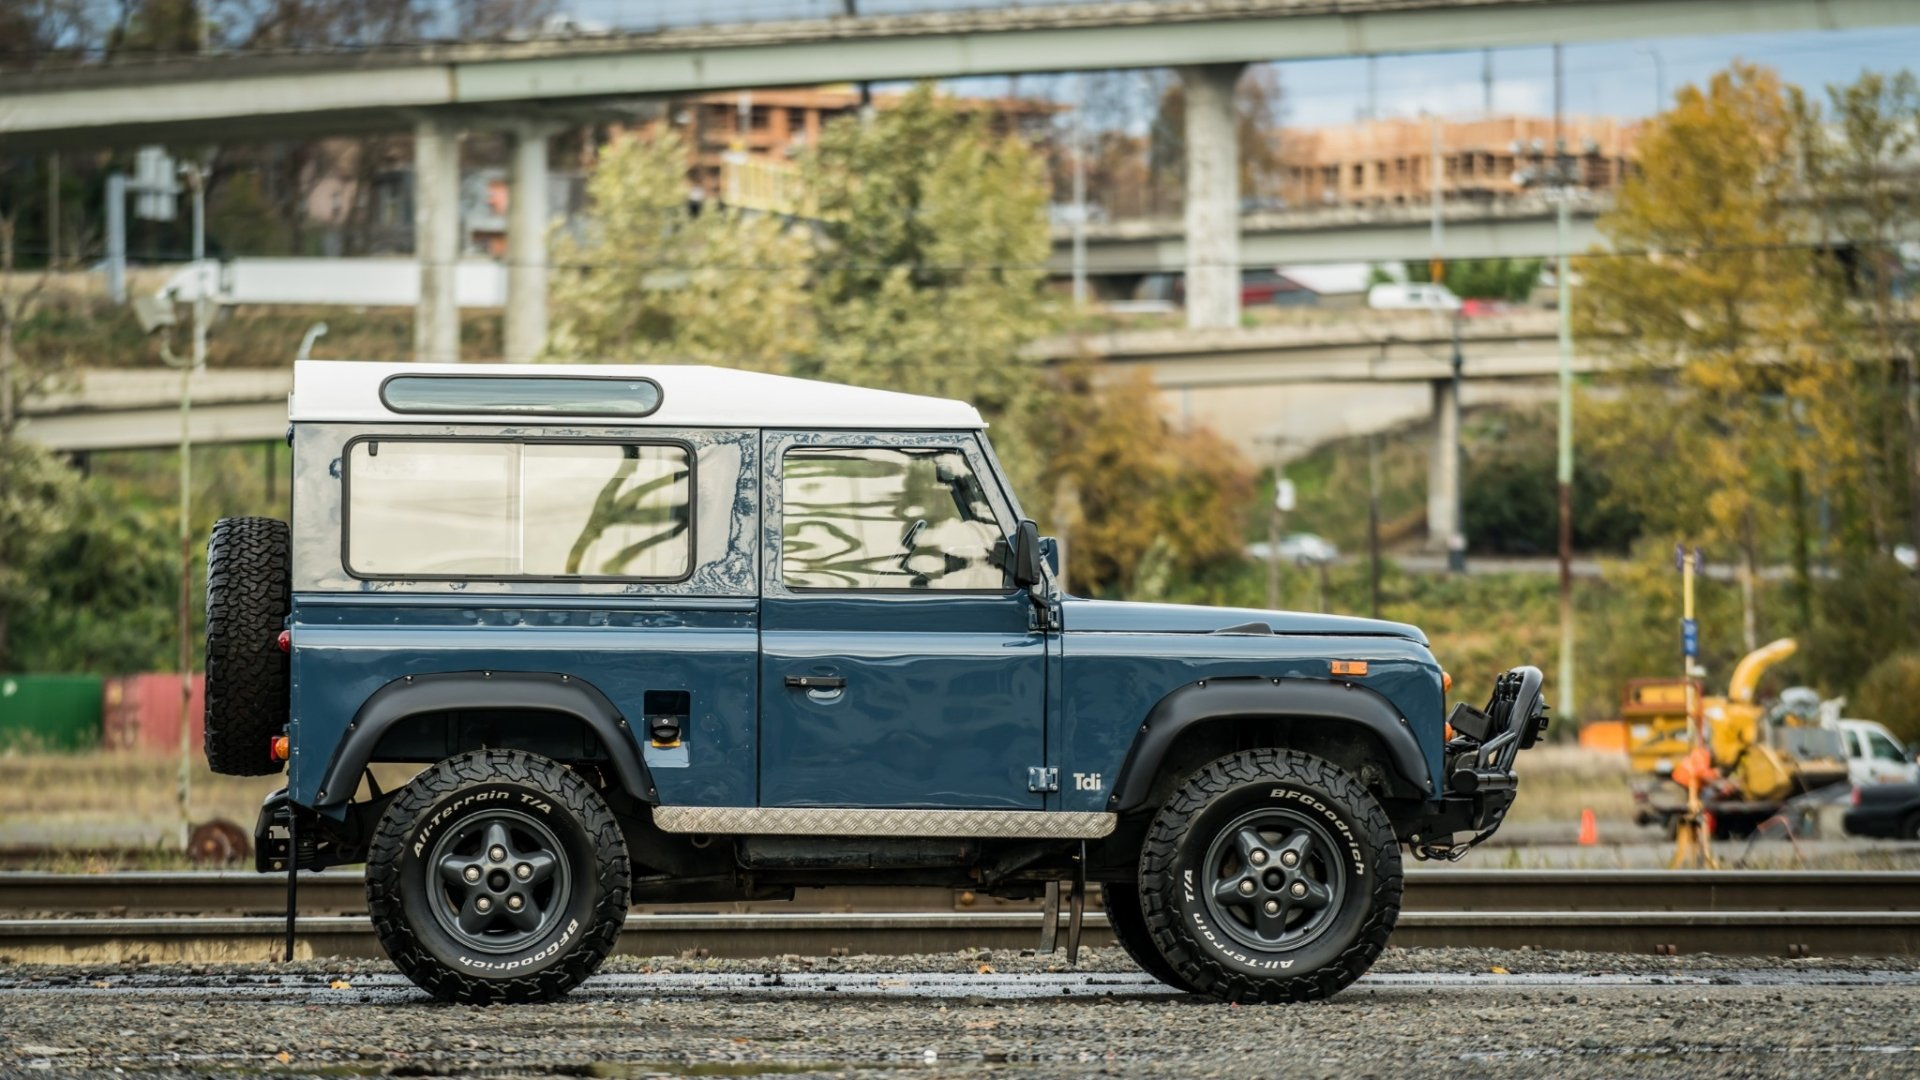 Vehicles - Land Rover Defender  Land Rover Defender 90 Off-Road Blue Car Old Car Car Wallpaper